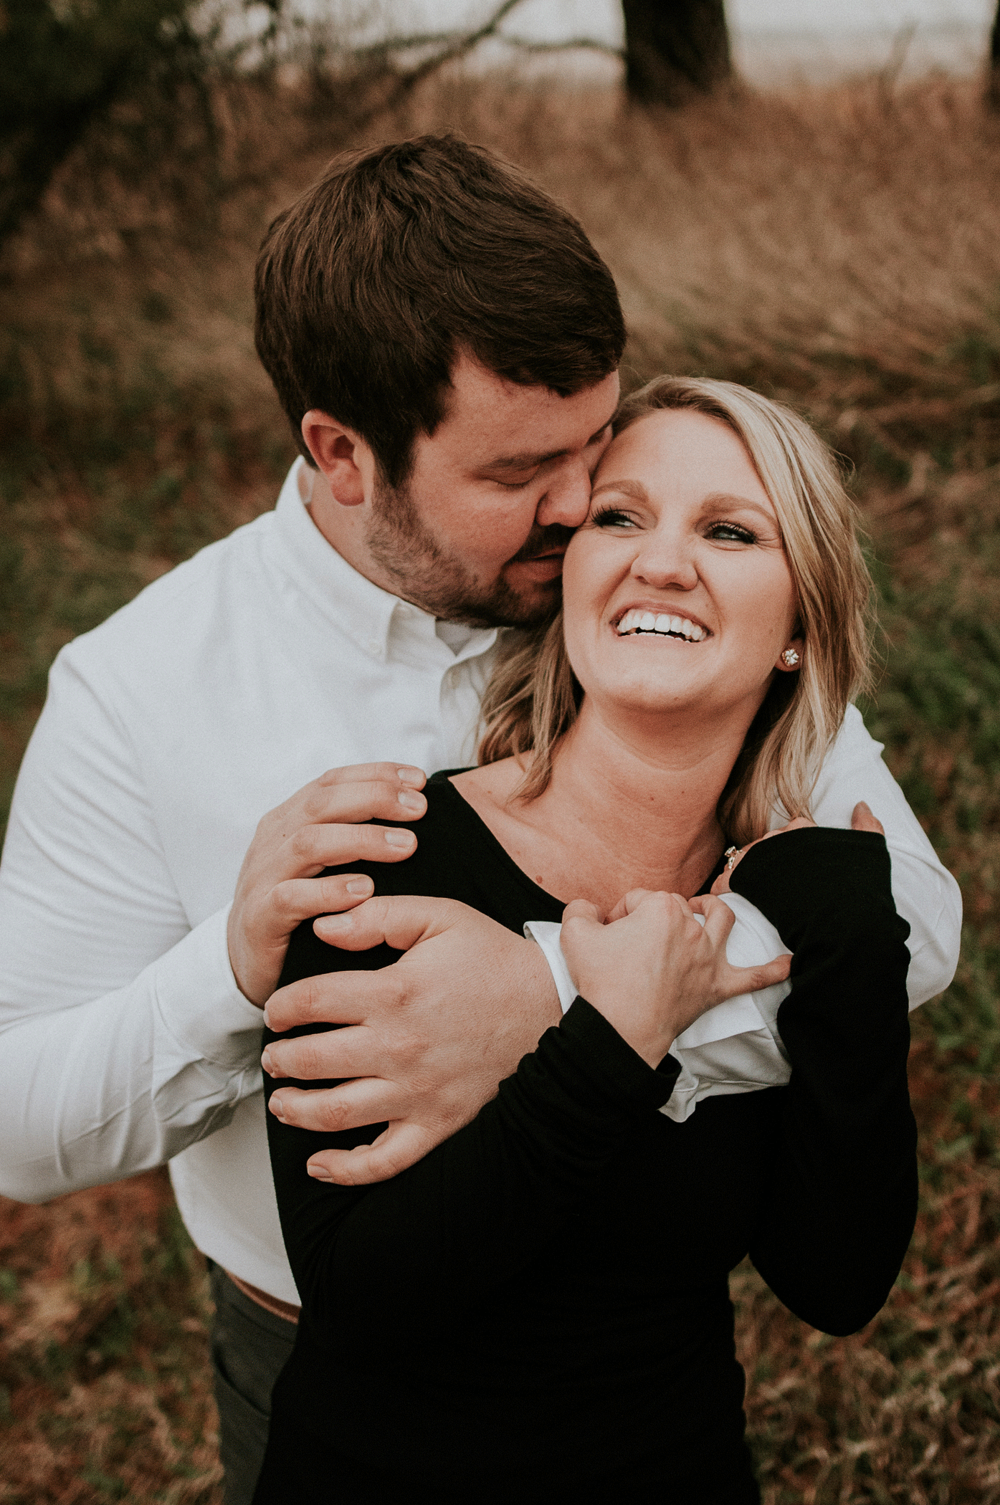 kaylie-sirek-nebraska-wedding-engagement-photographer-photography-grand-island-kearney-hastings-lincoln-36.png